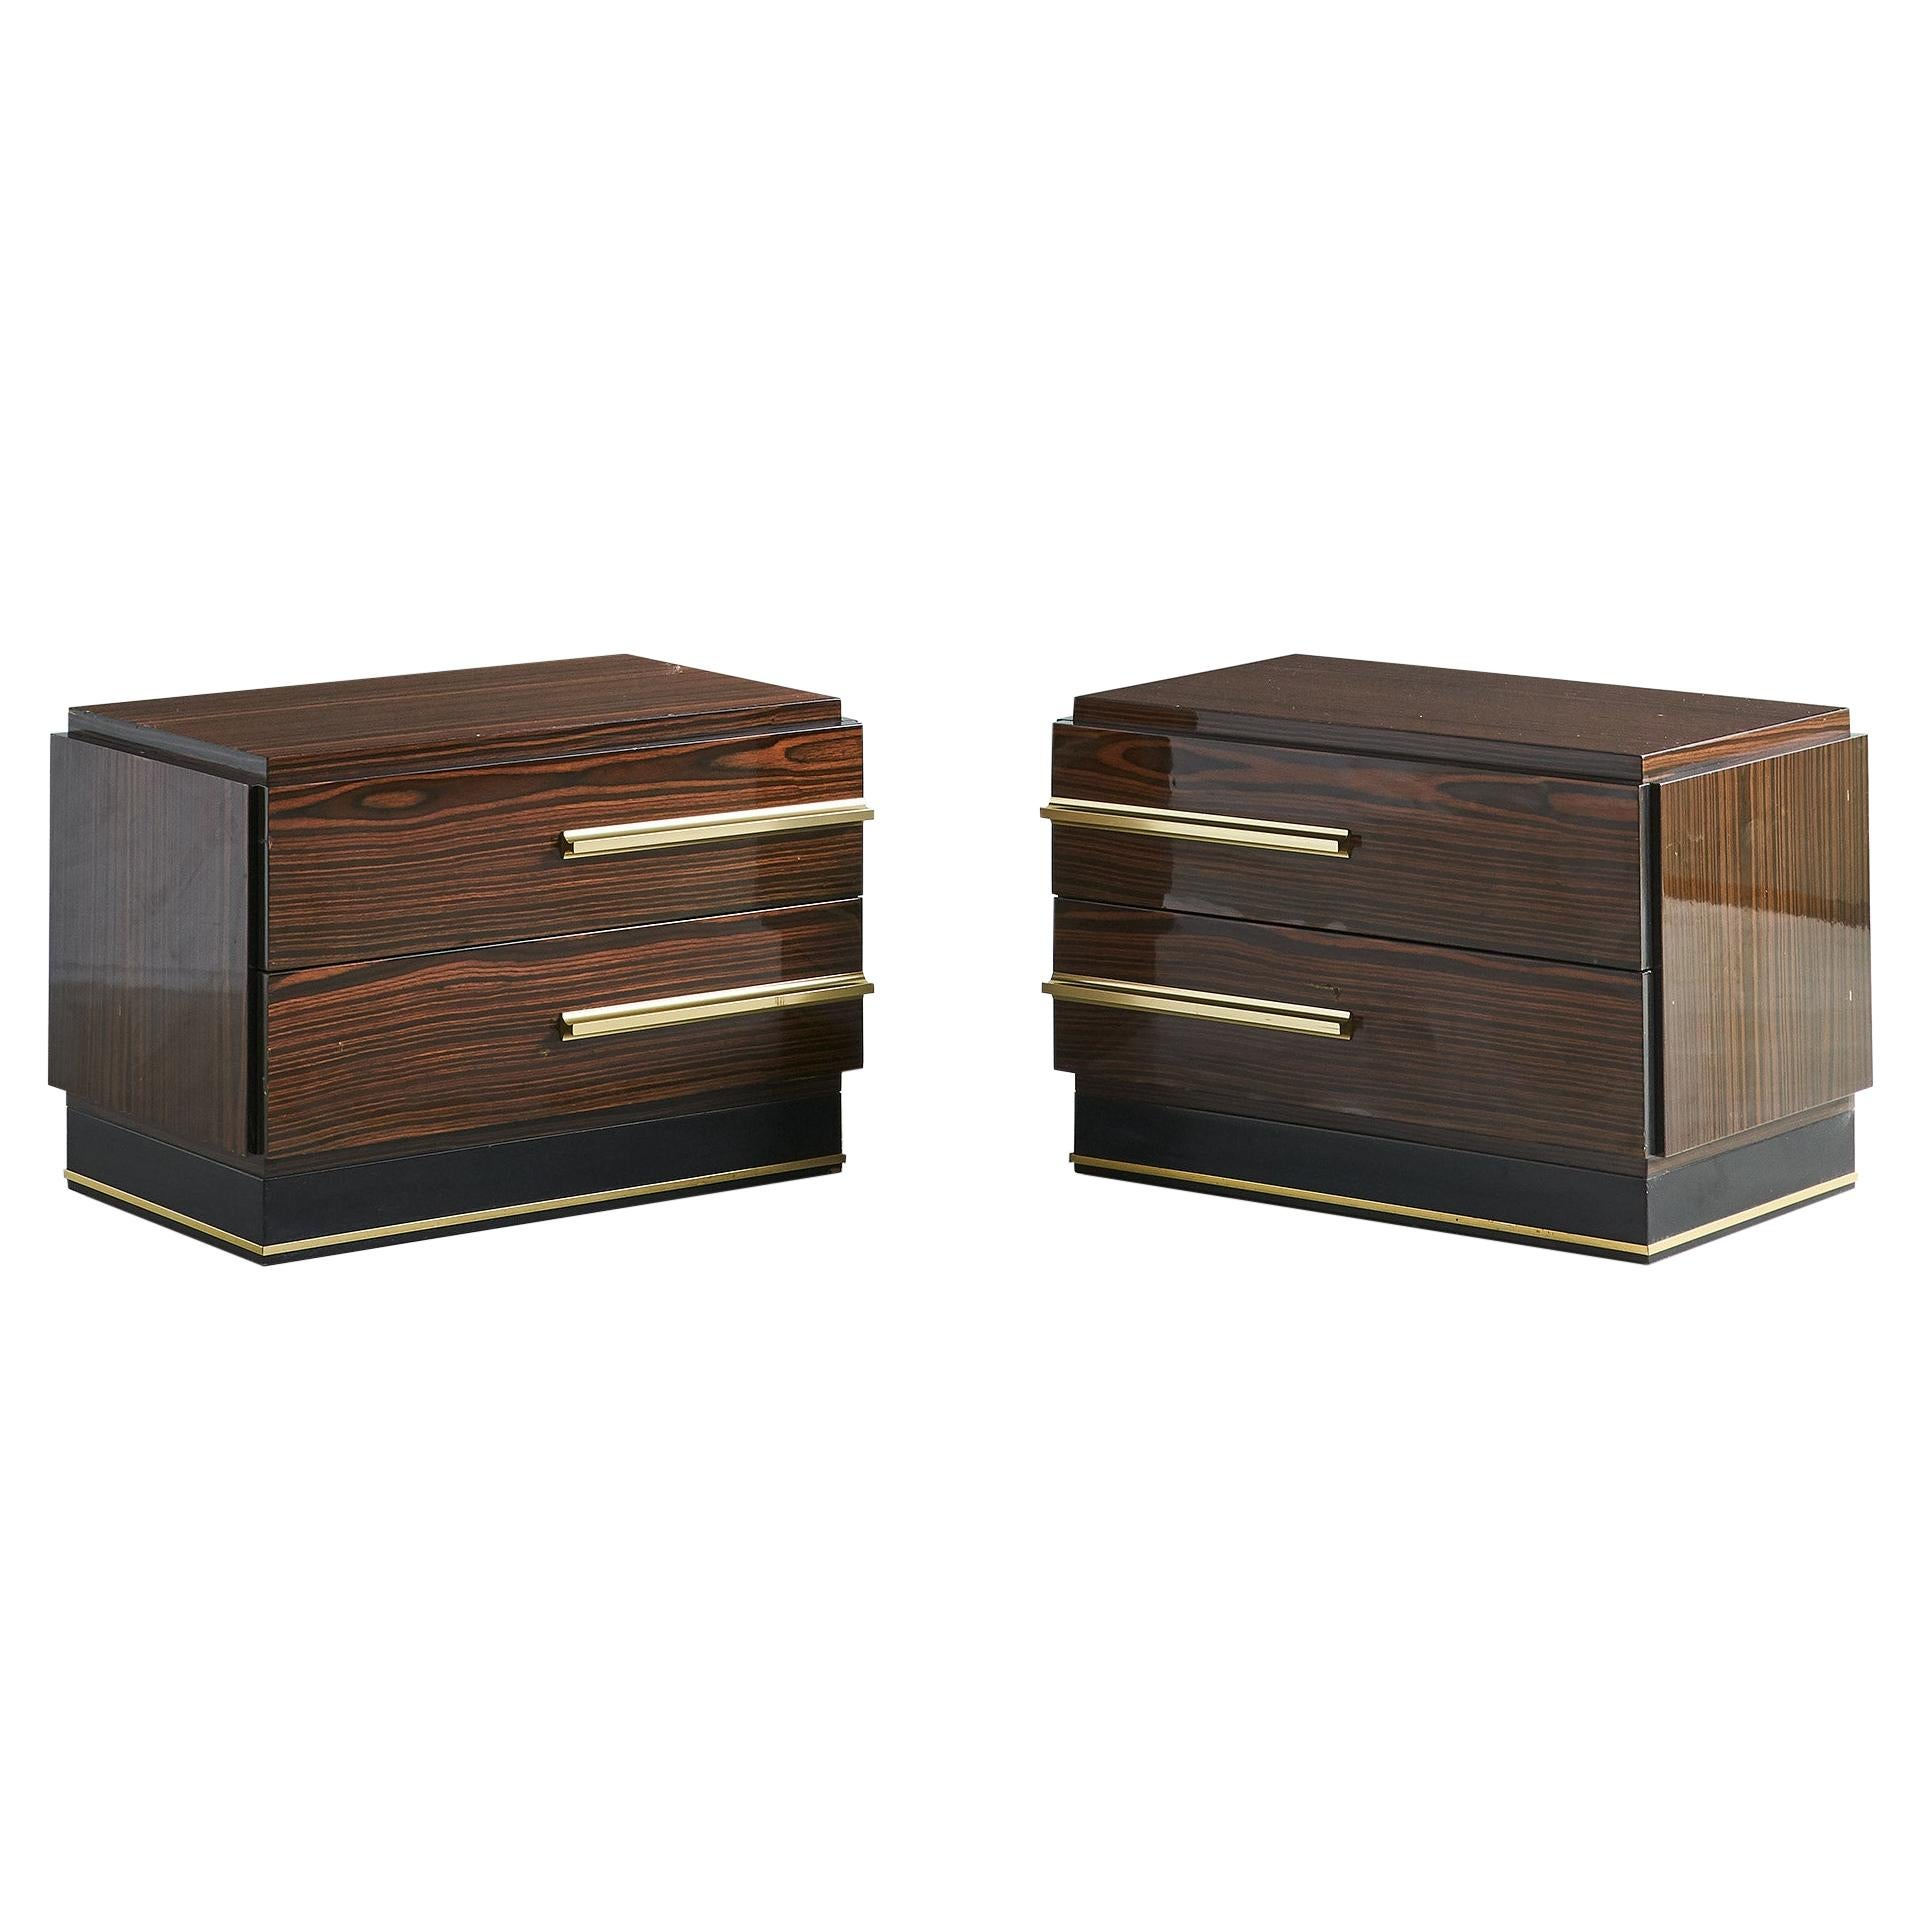 Nightstands by Luciano Frigerio